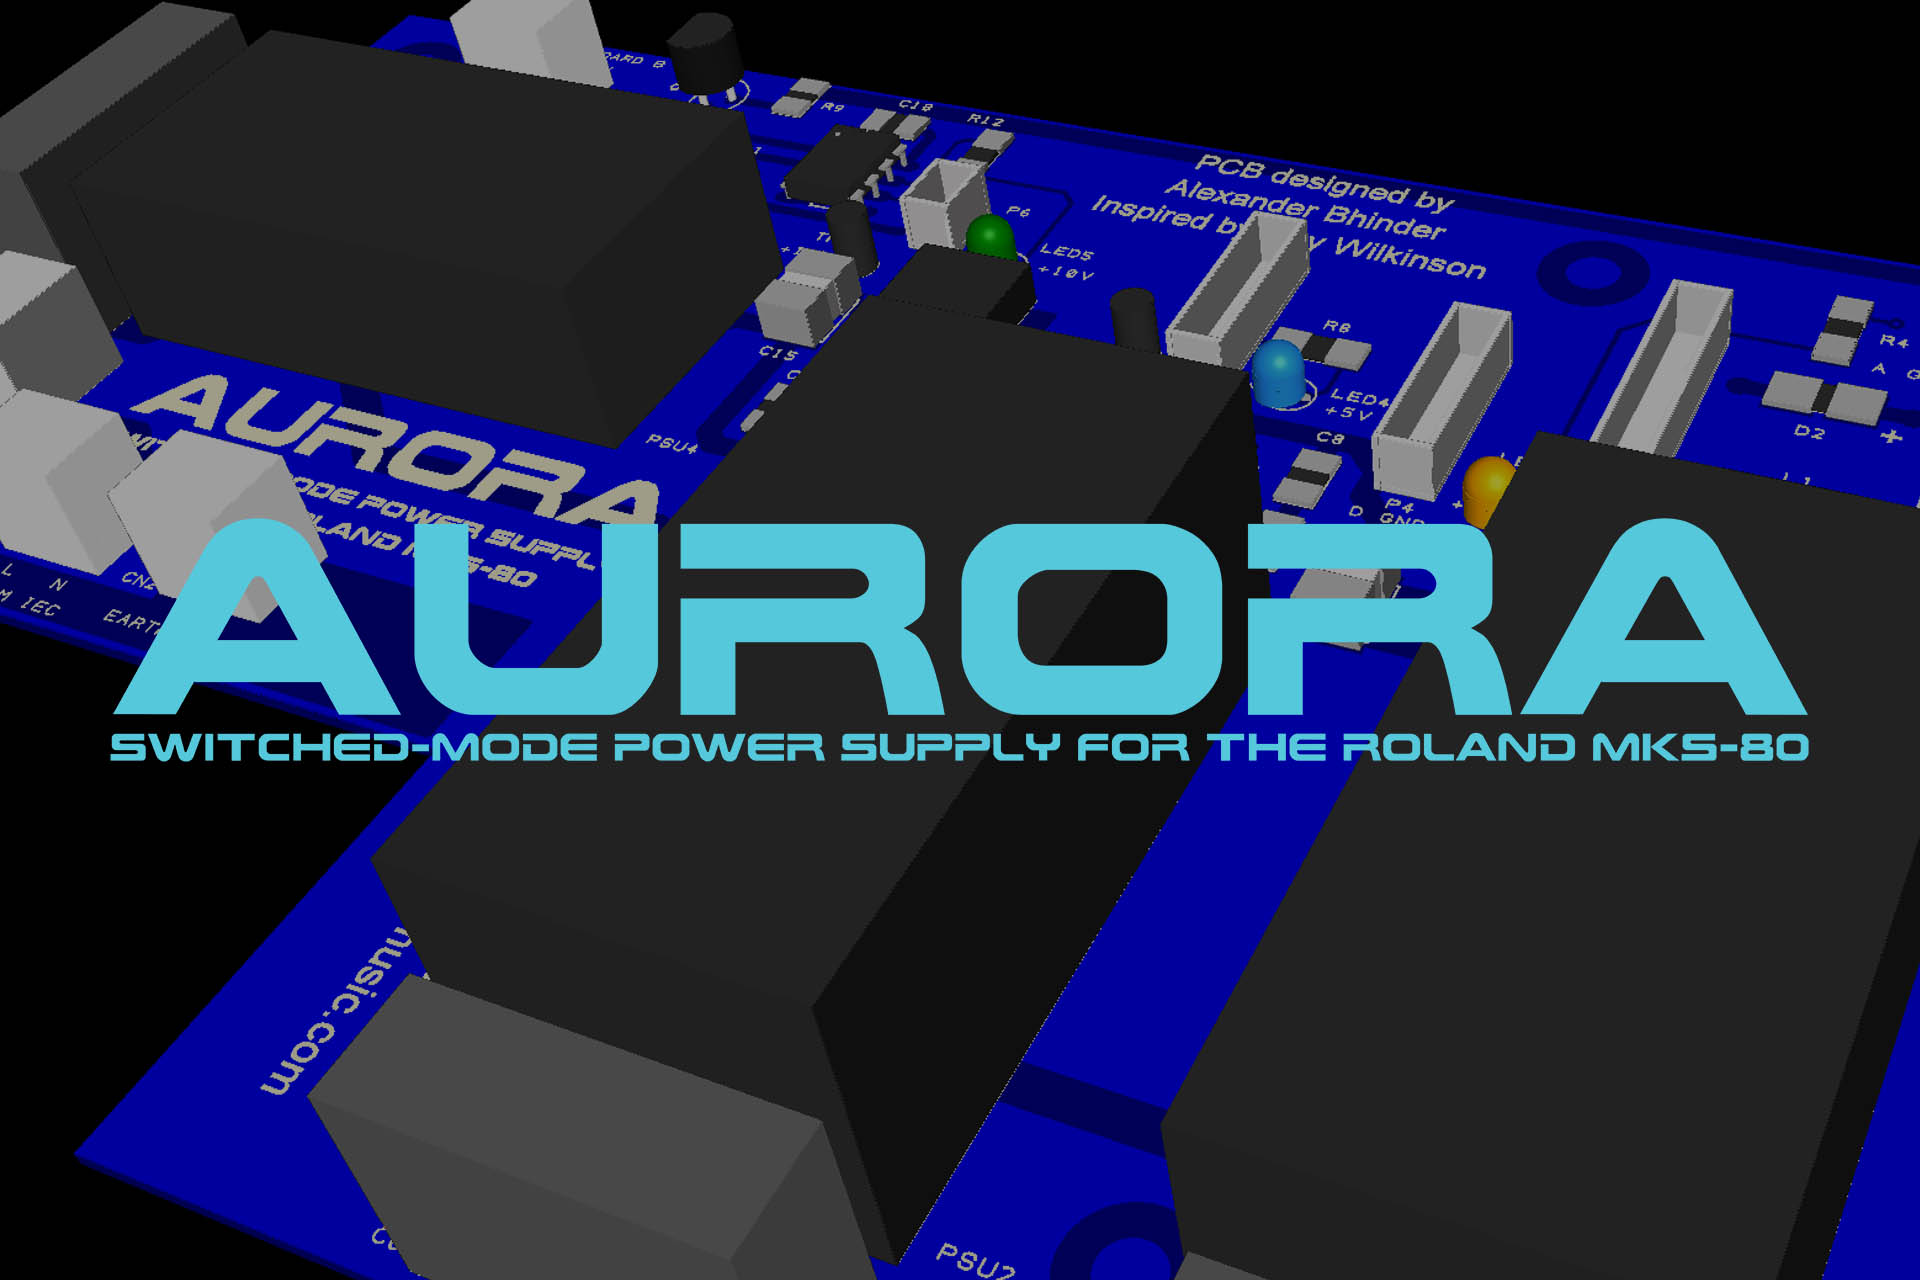 Aurora - Switch Mode Power Supply for the Roland MKS-80